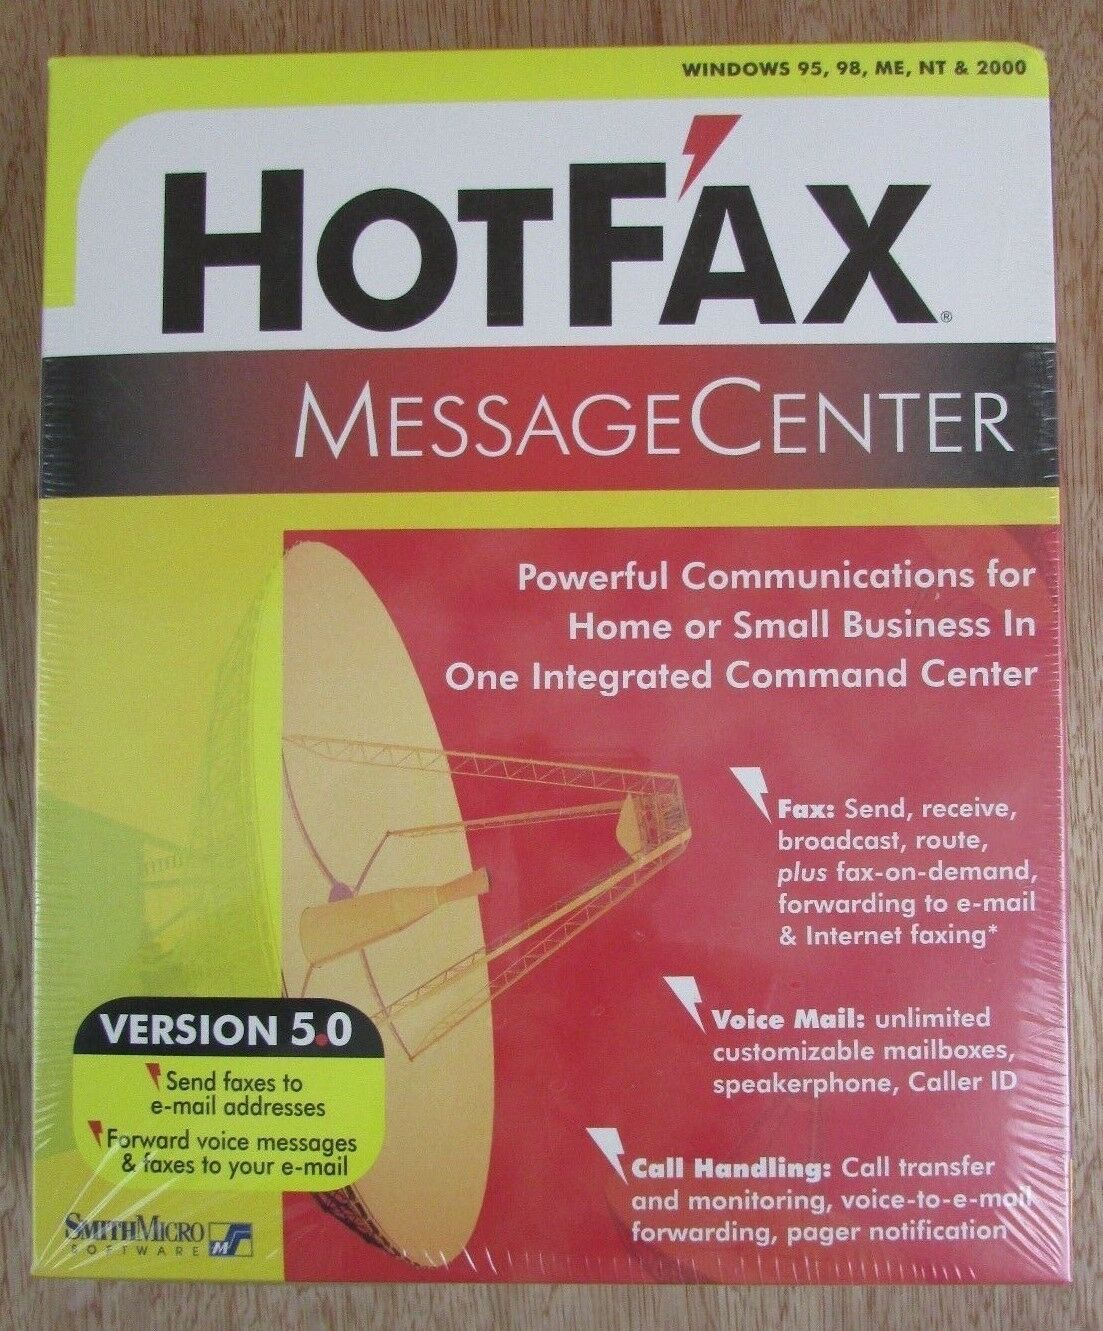 HotFax Message Center PC Software Version 5.0 For 95, 98, ME, NT, & 2000